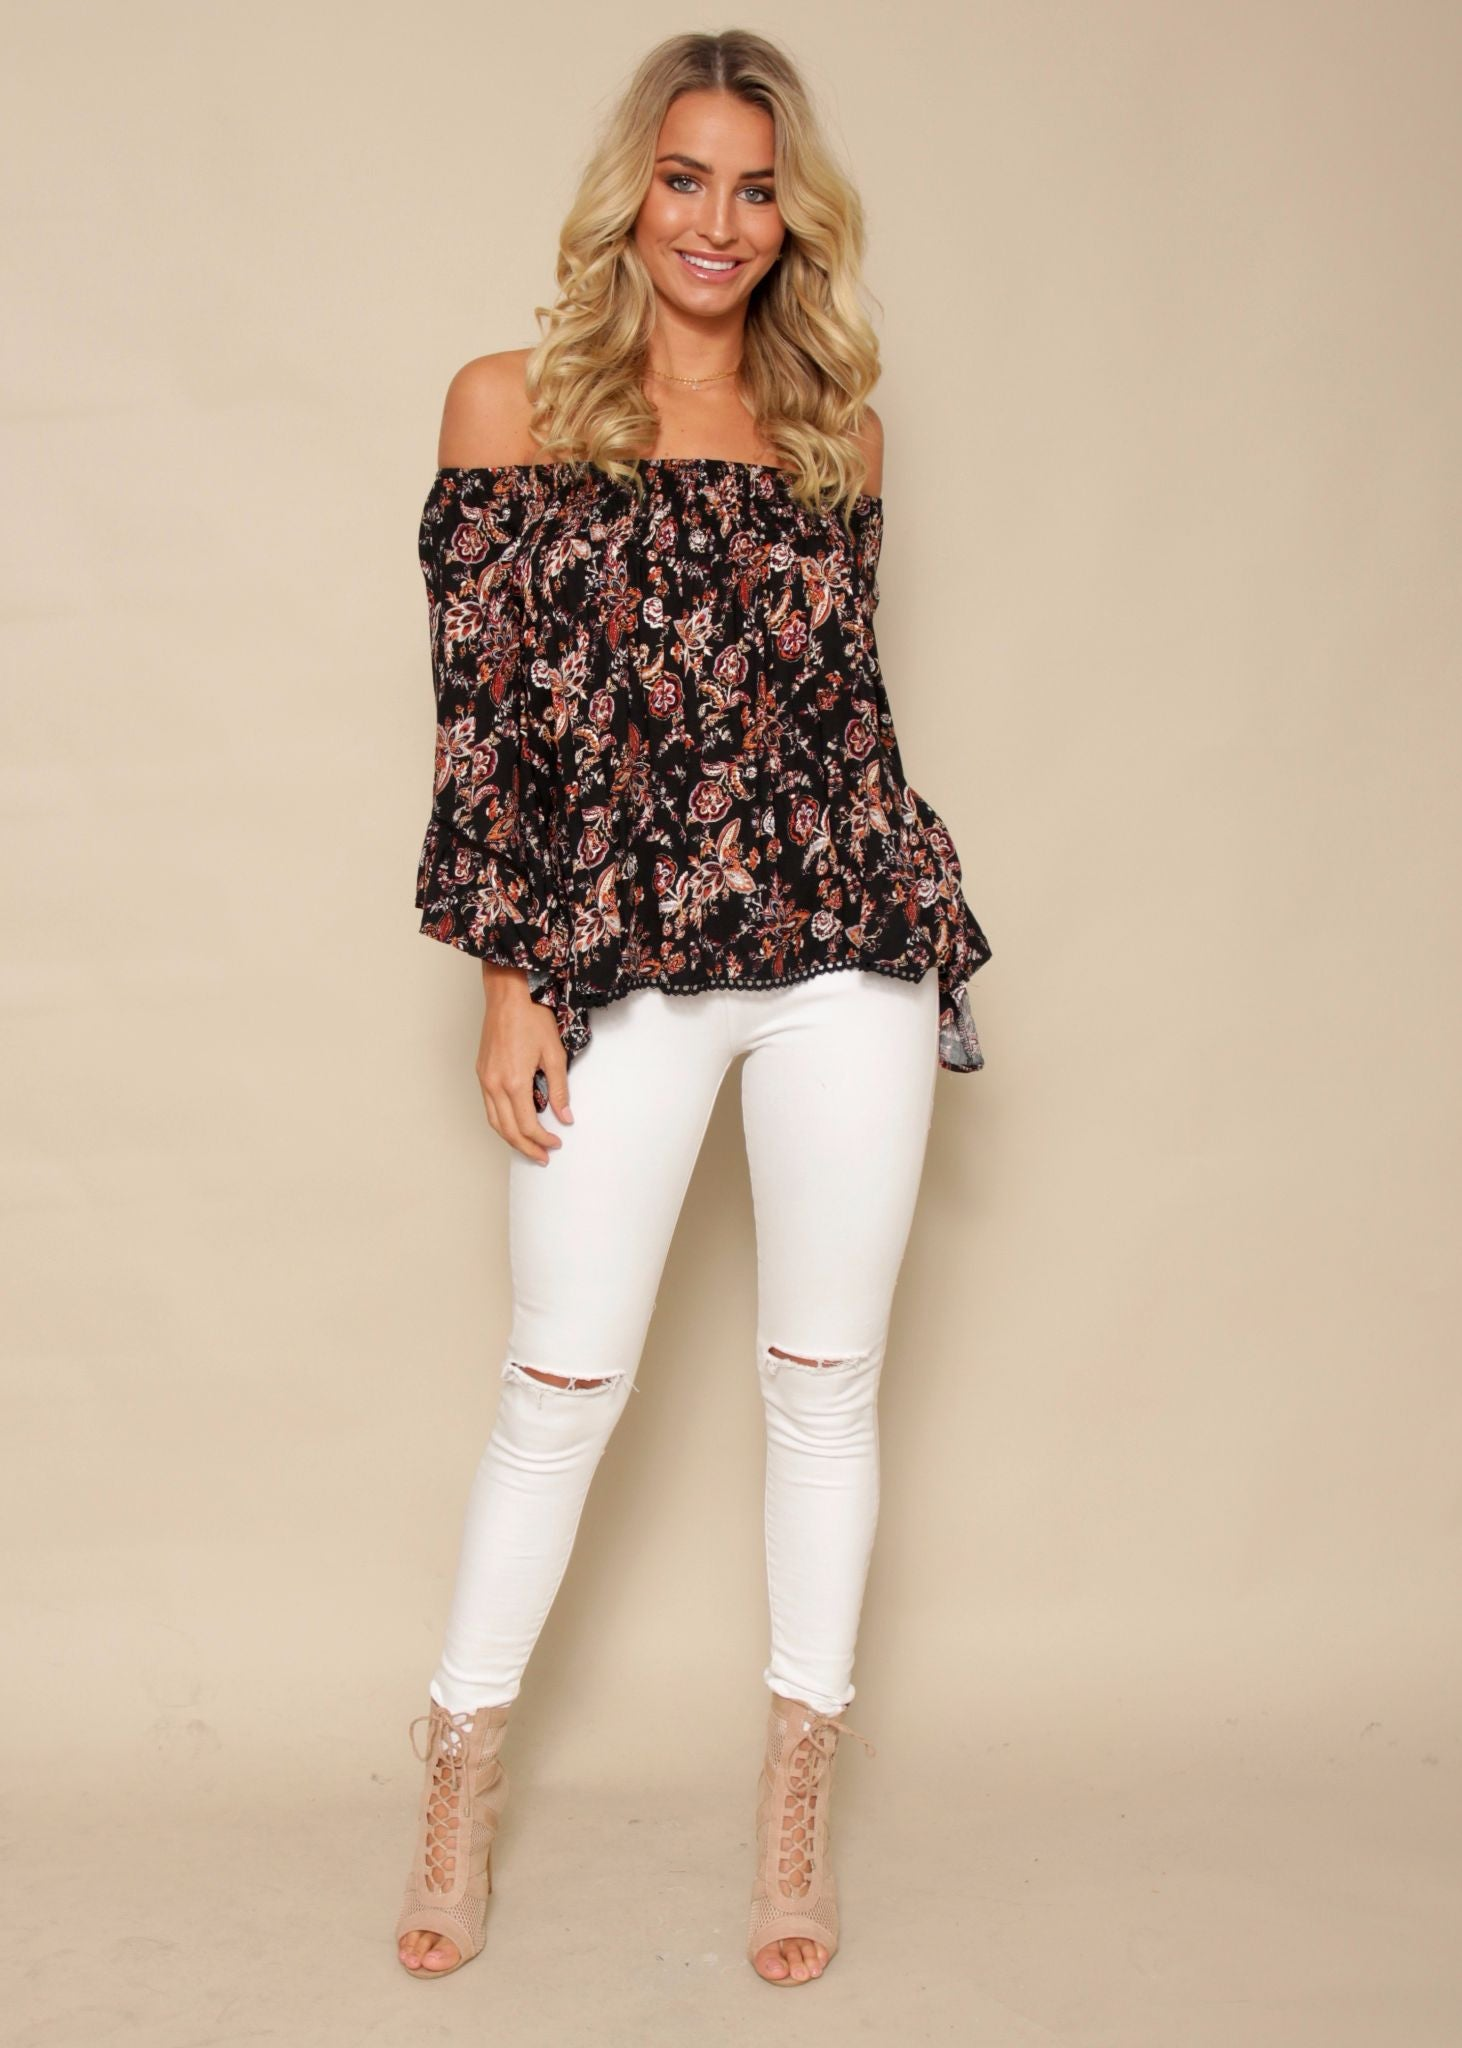 Sugar Night Off Shoulder Top - Black Henna